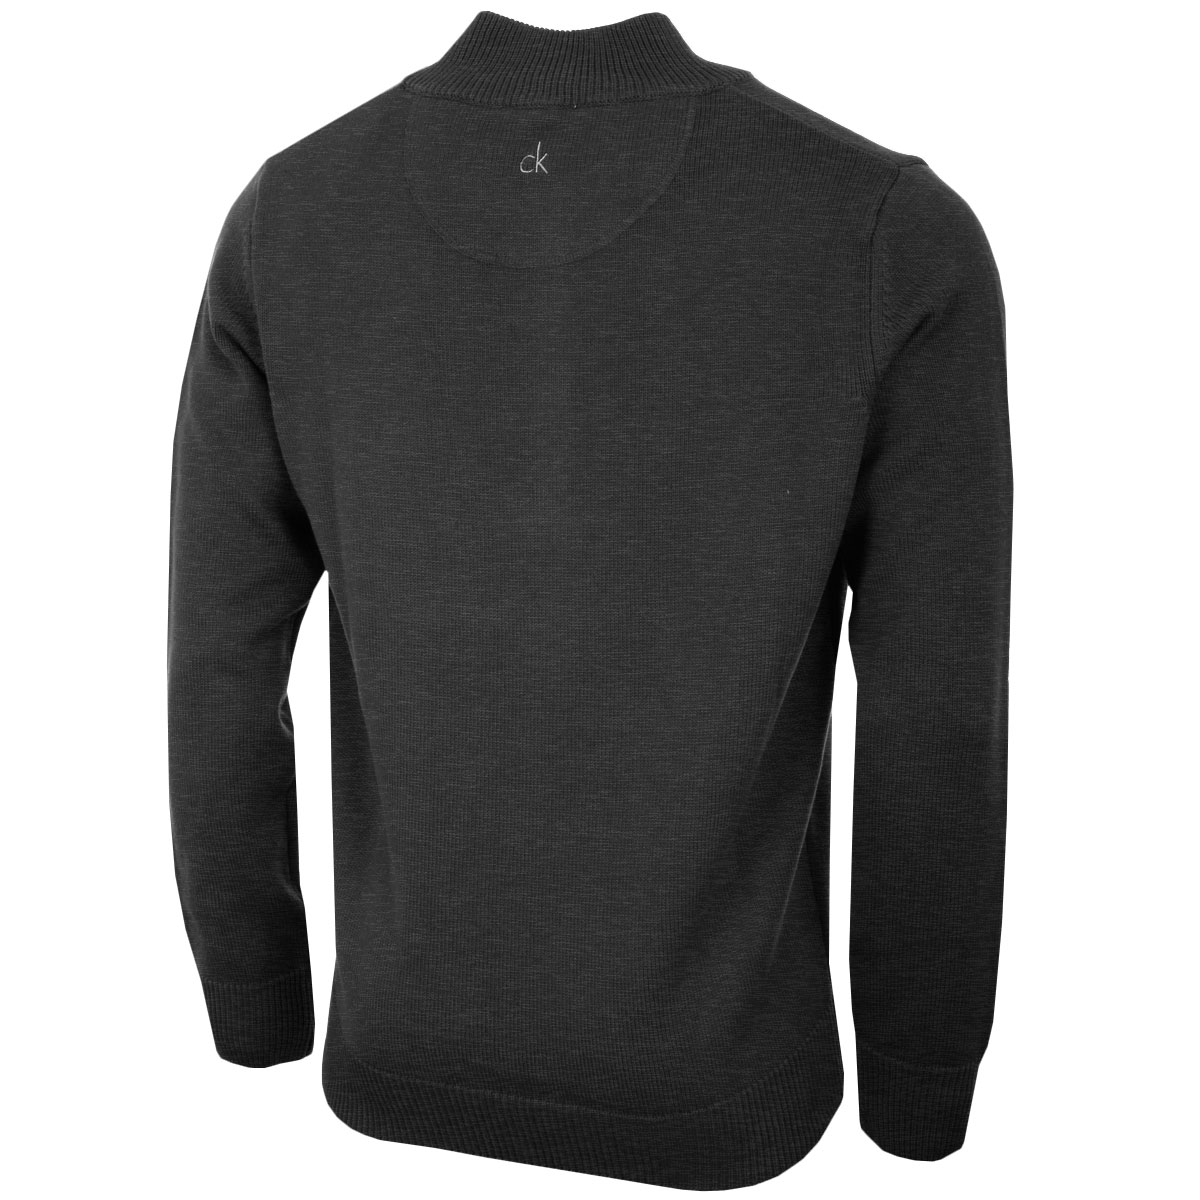 Calvin-Klein-Golf-Mens-2019-Chunky-Cotton-1-2-Zip-Golf-Top-Sweater-37-OFF-RRP thumbnail 3